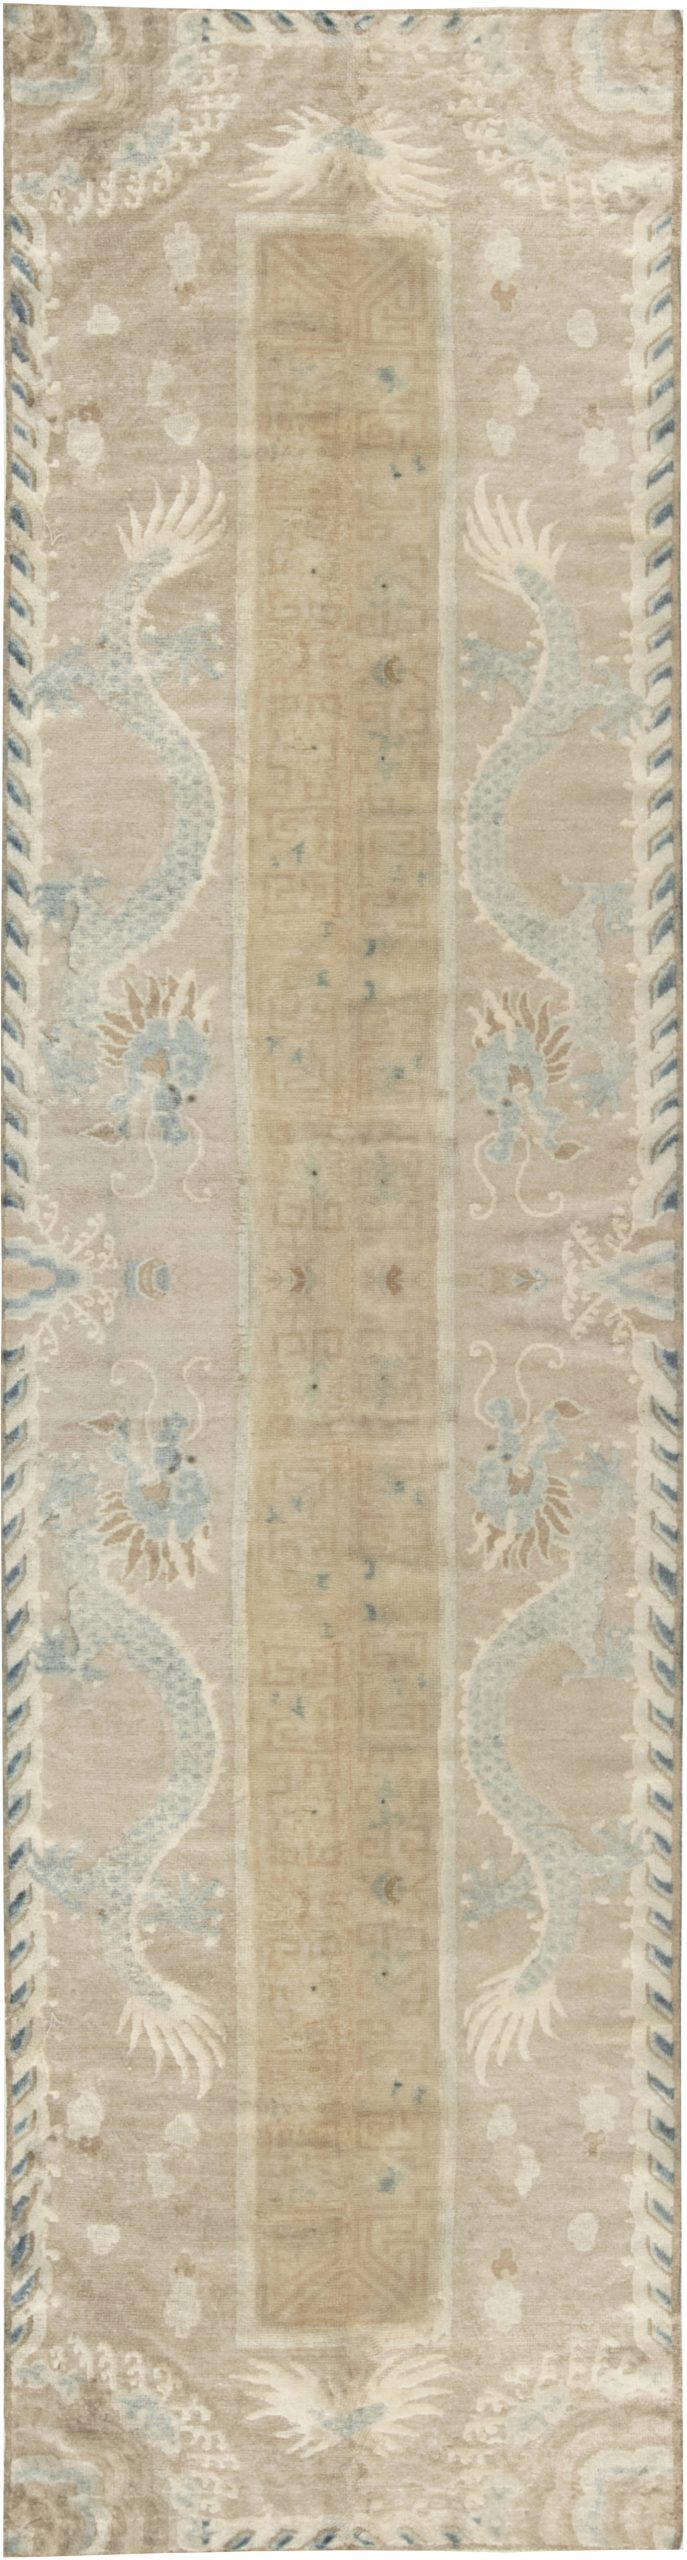 Antique Chinese Runner (Size Adjusted) BB6656